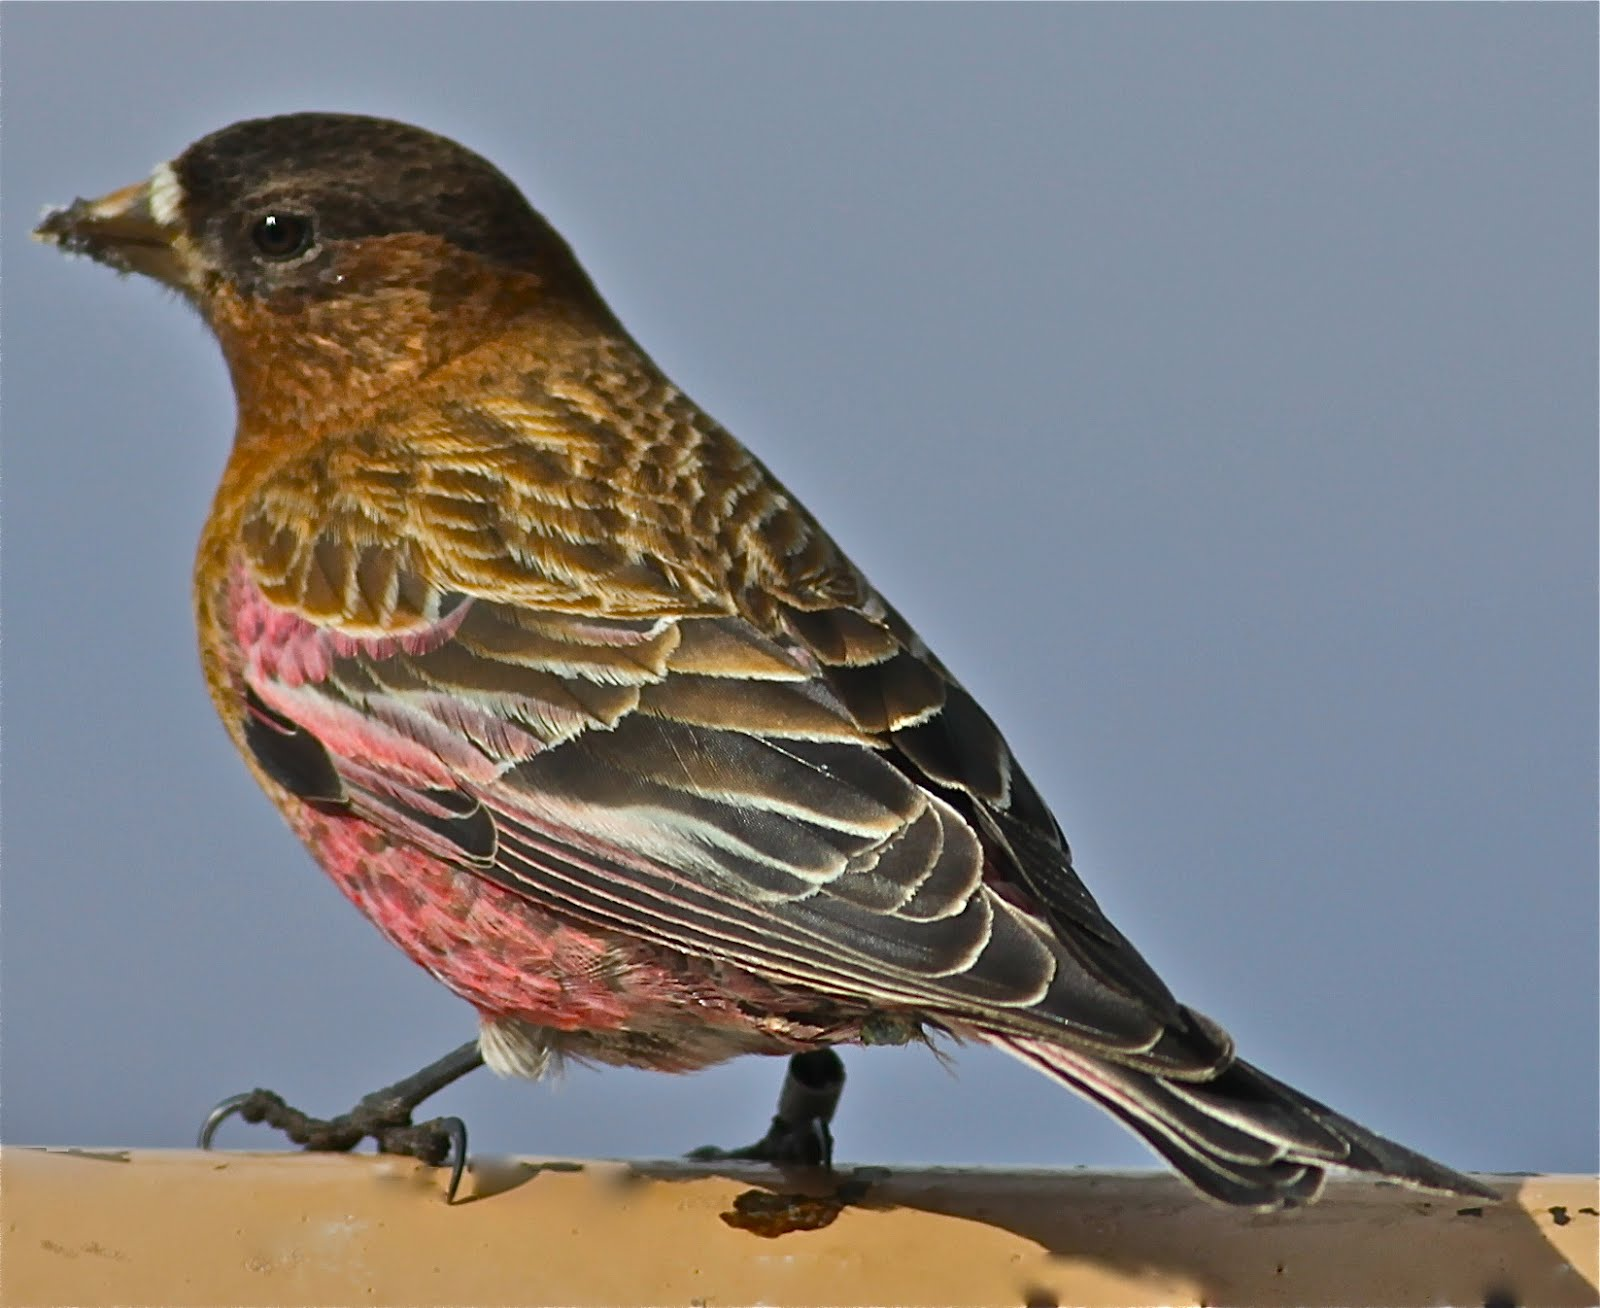 birding is fun rosy finches at sandia crest new mexico